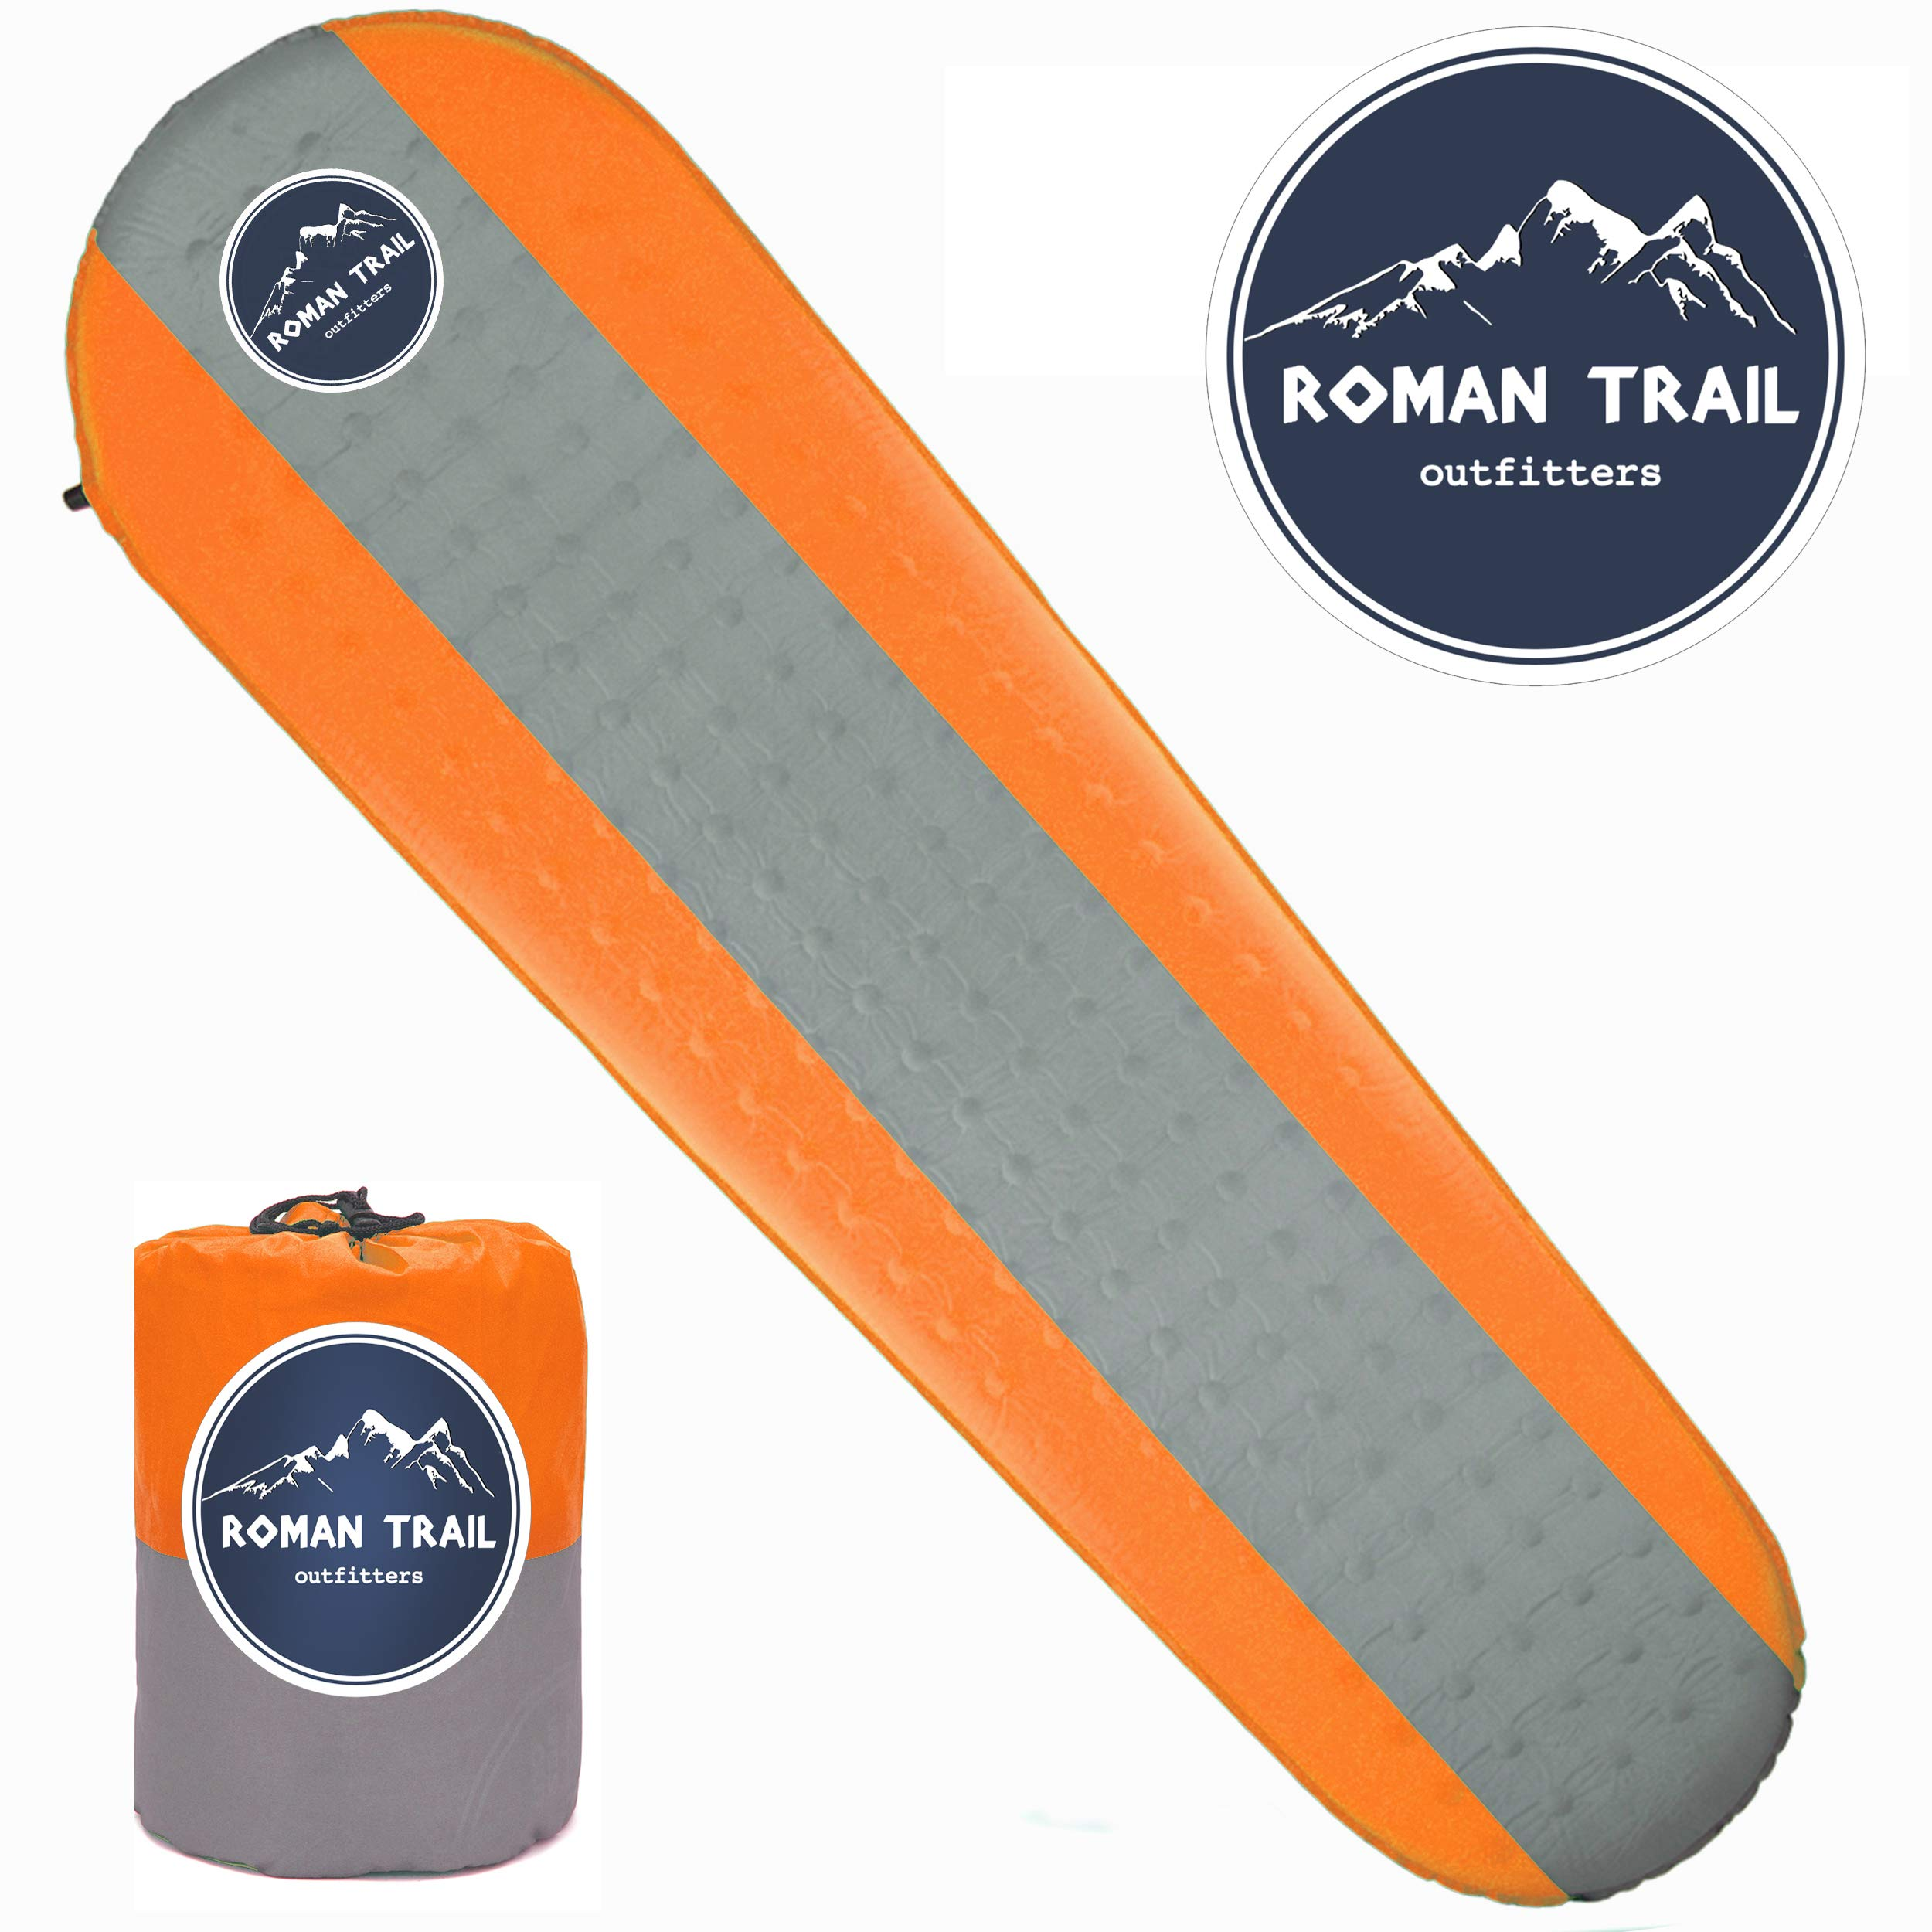 Best Self Inflating Sleeping pad Lightweight Camping Foam pad- Best for Camping Backpacking & Hiking. R Value of 4.9 - Inflatable Camping Mattress (Orange, Large) by Roman Trail Outfitters